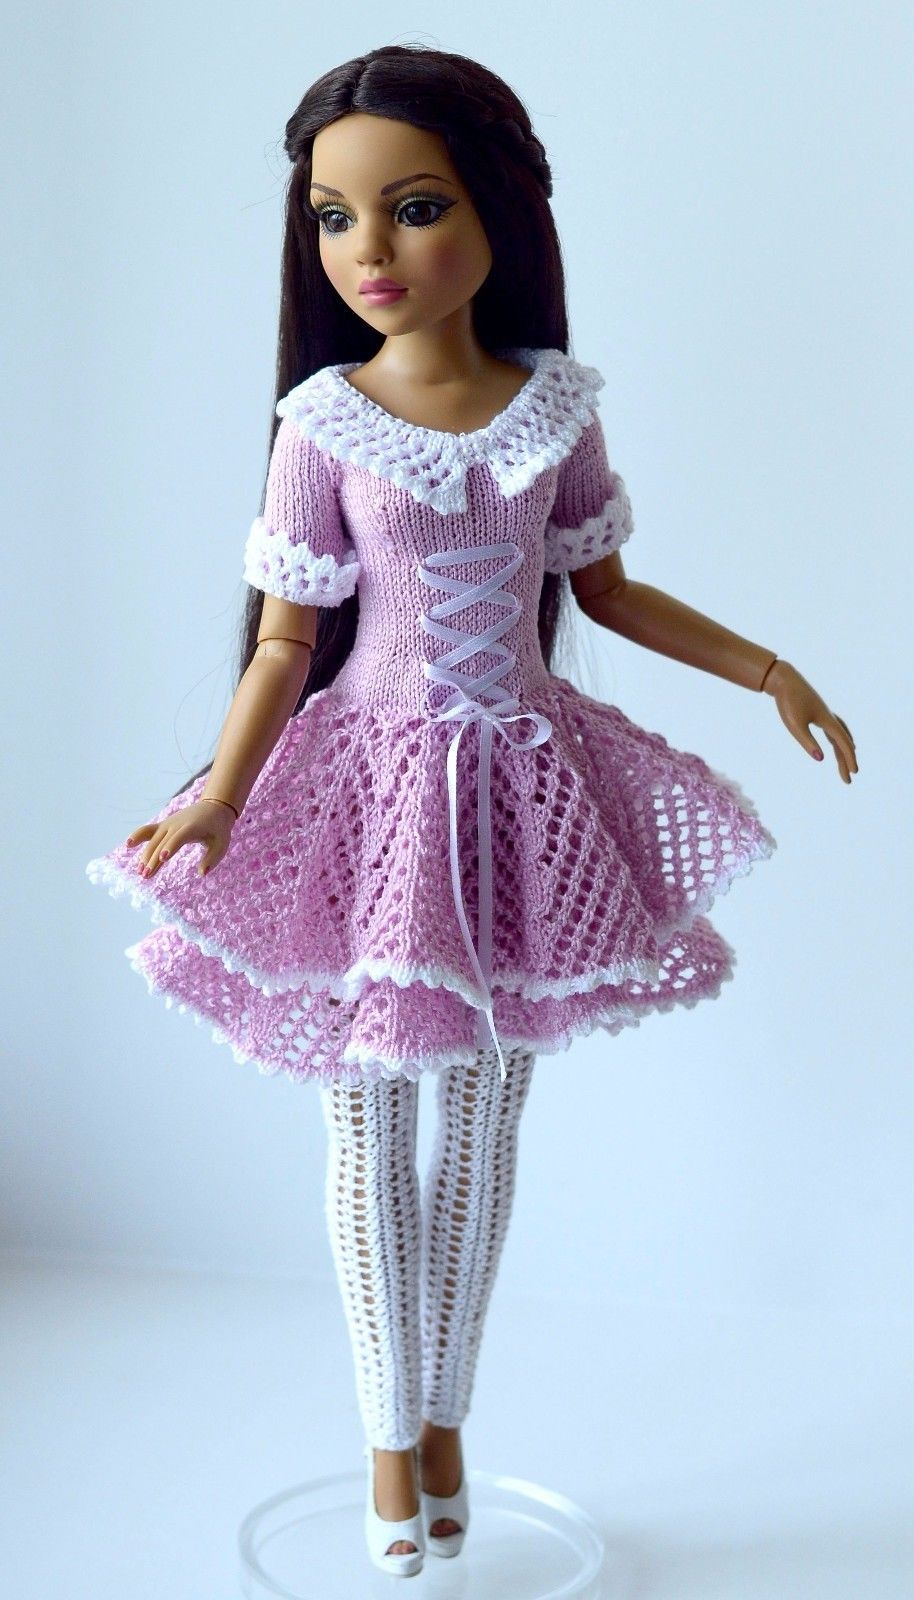 bfab1a19347f9 Details about Handmade knit outfit for Tonner Doll Ellowyne Wilde ...